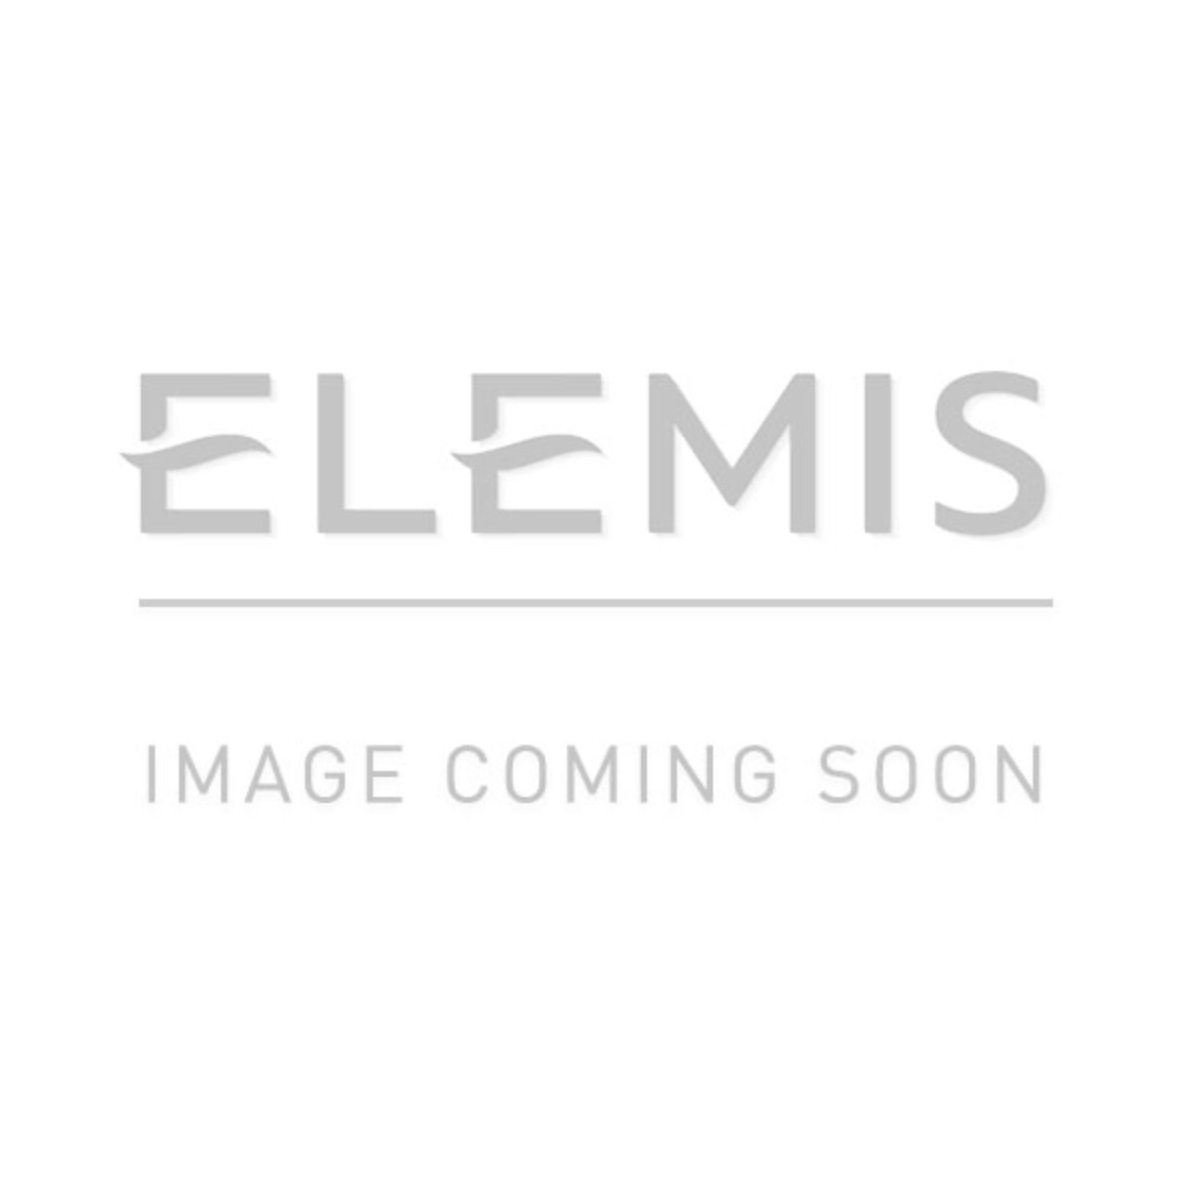 Buy award-winning, anti-aging face and body skin care online at ELEMIS, the no1 luxury British skincare brand. Free shipping and samples with every order.